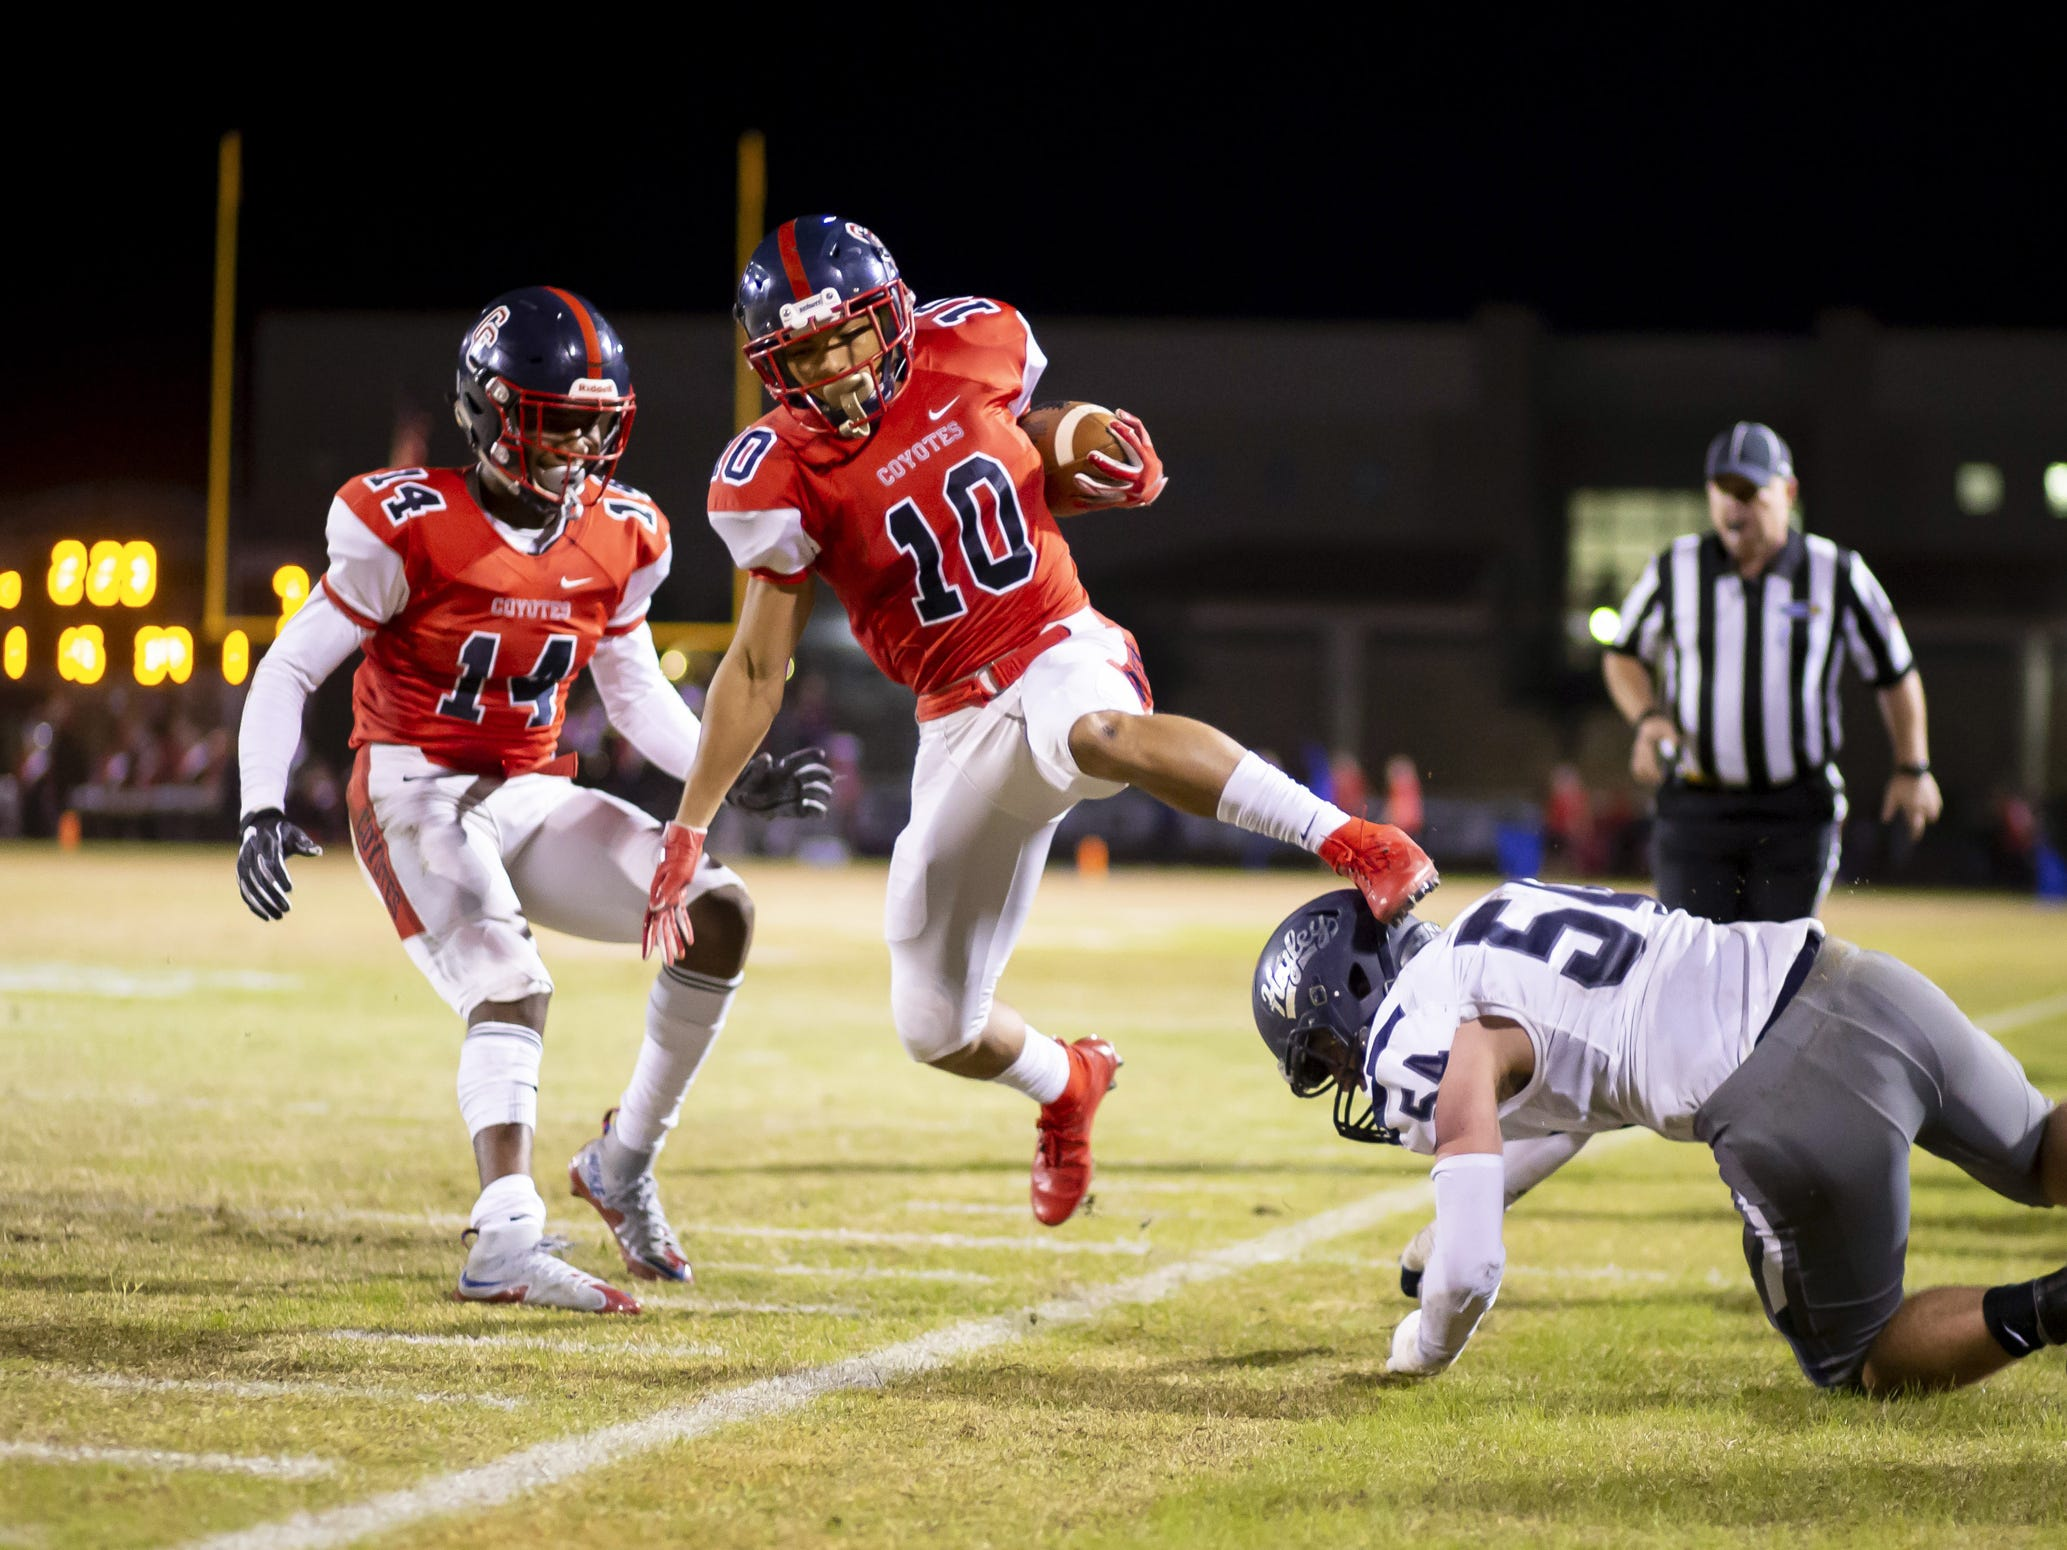 Senior wide receiver Jeiel Stark (10) of the Centennial Coyotes is pulled out of bounds by senior middle linebacker Dylan Pedersen (54) of the Higley Knights in the playoffs at Willow Canyon High School on Friday, November 16, 2018 in Surprise, Arizona. #azhsfb